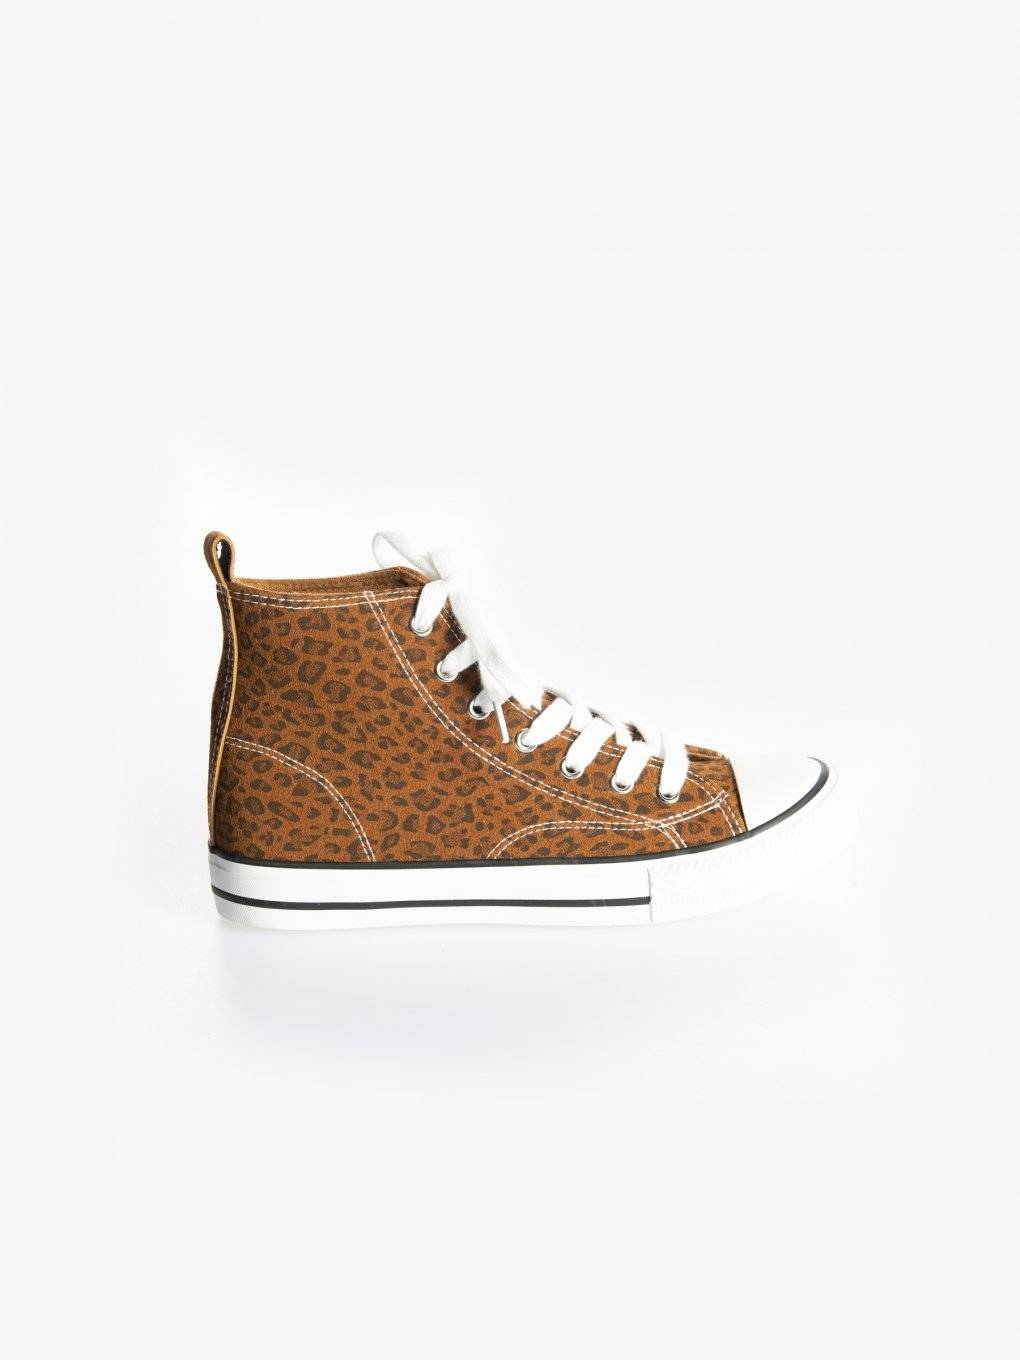 Animal print high top sneakers